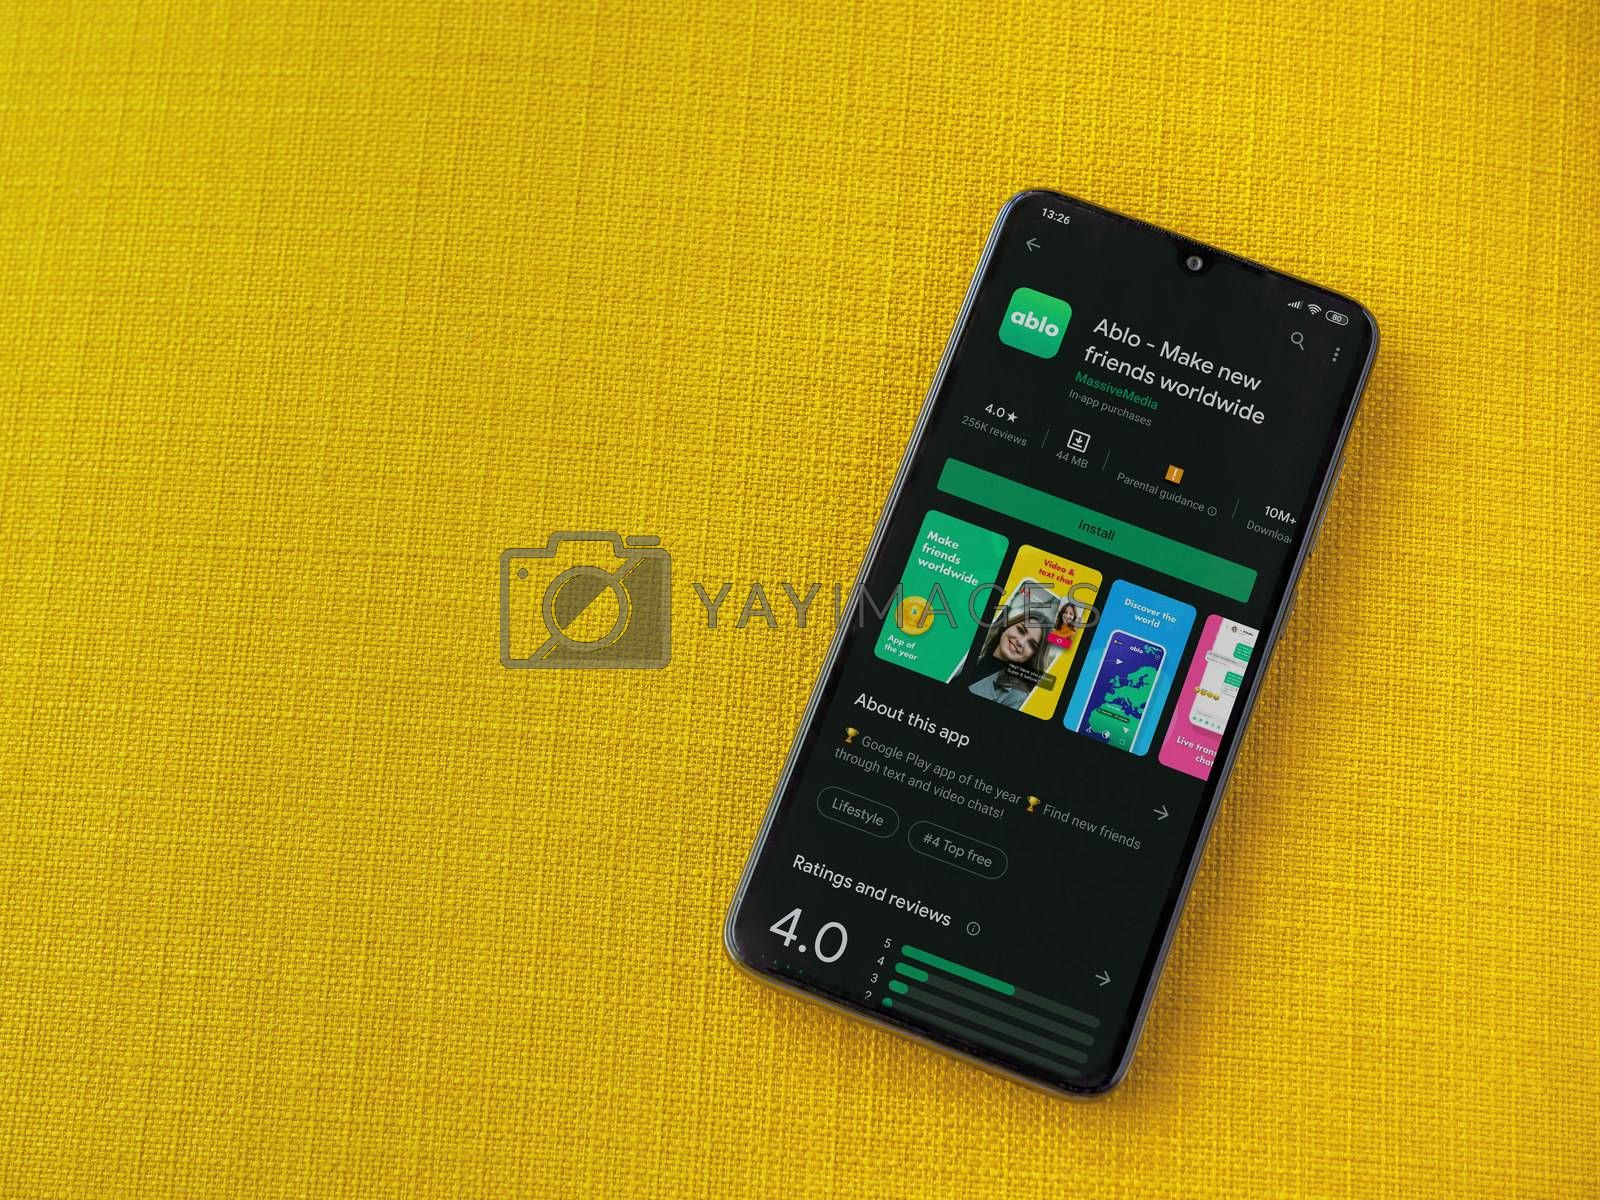 Lod, Israel - July 8, 2020: Ablo app play store page on the display of a black mobile smartphone on a yellow fabric background. Top view flat lay with copy space.